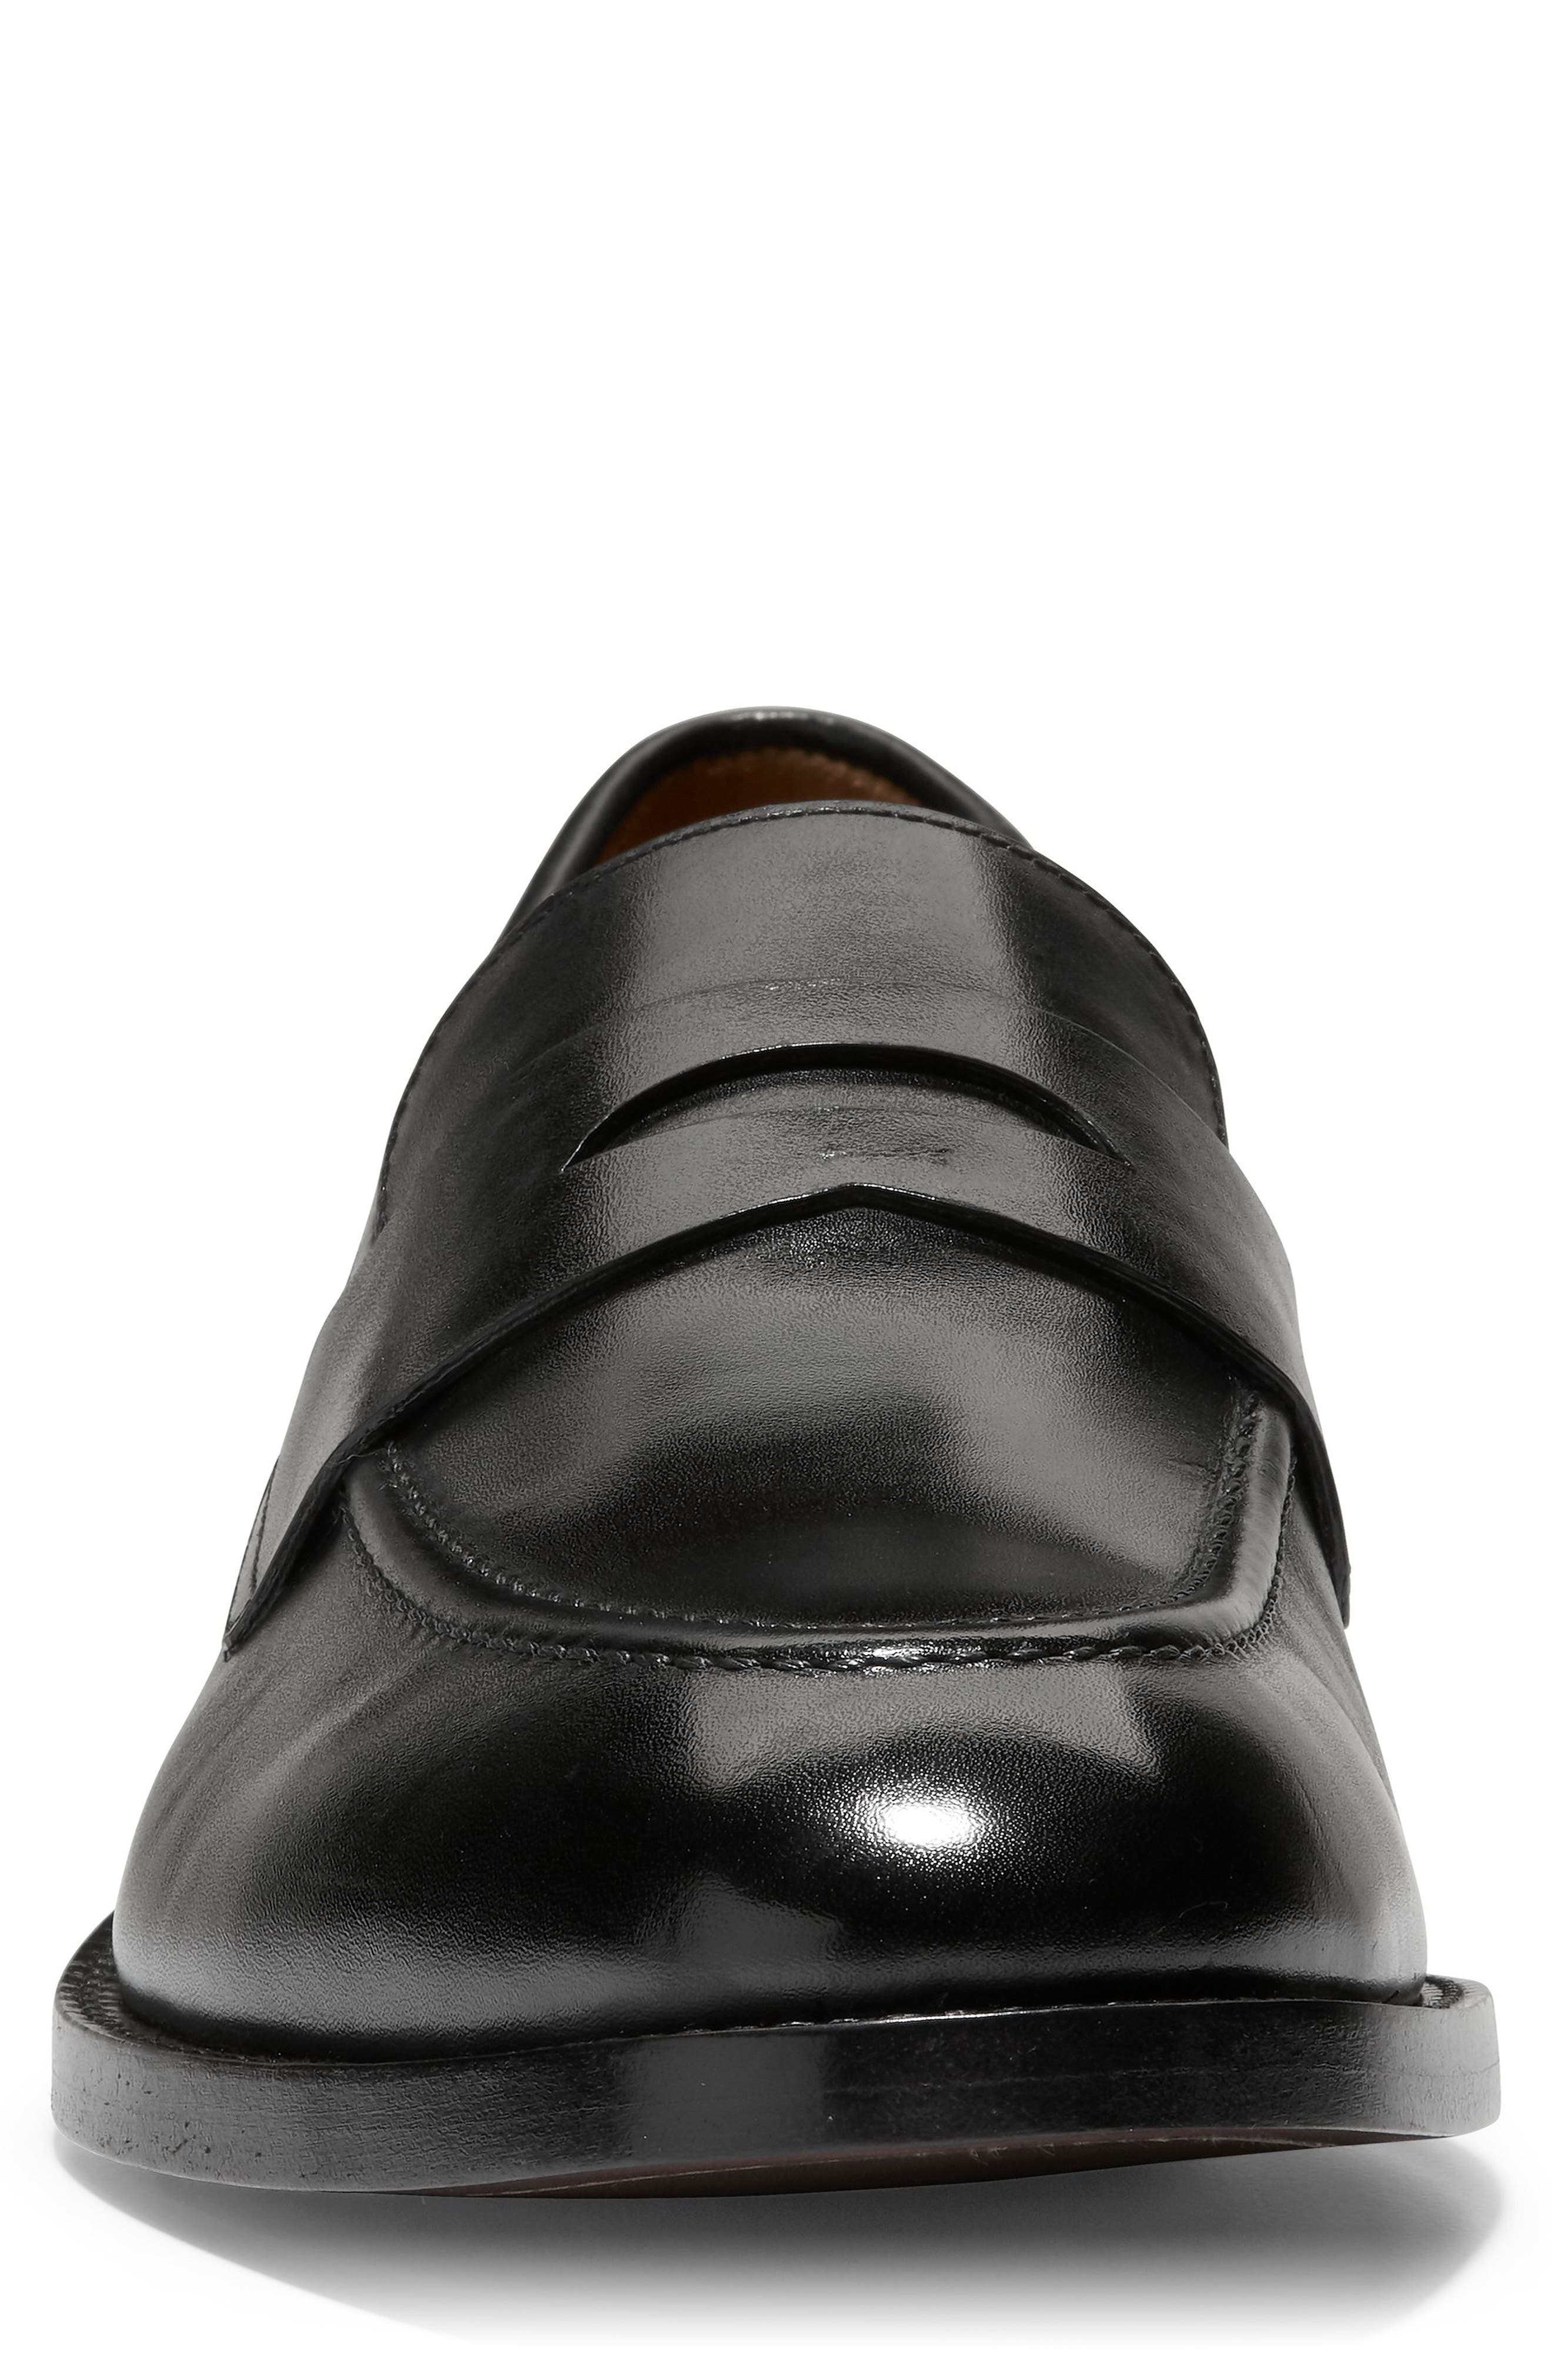 COLE HAAN, American Classics Kneeland Penny Loafer, Alternate thumbnail 4, color, BLACK LEATHER